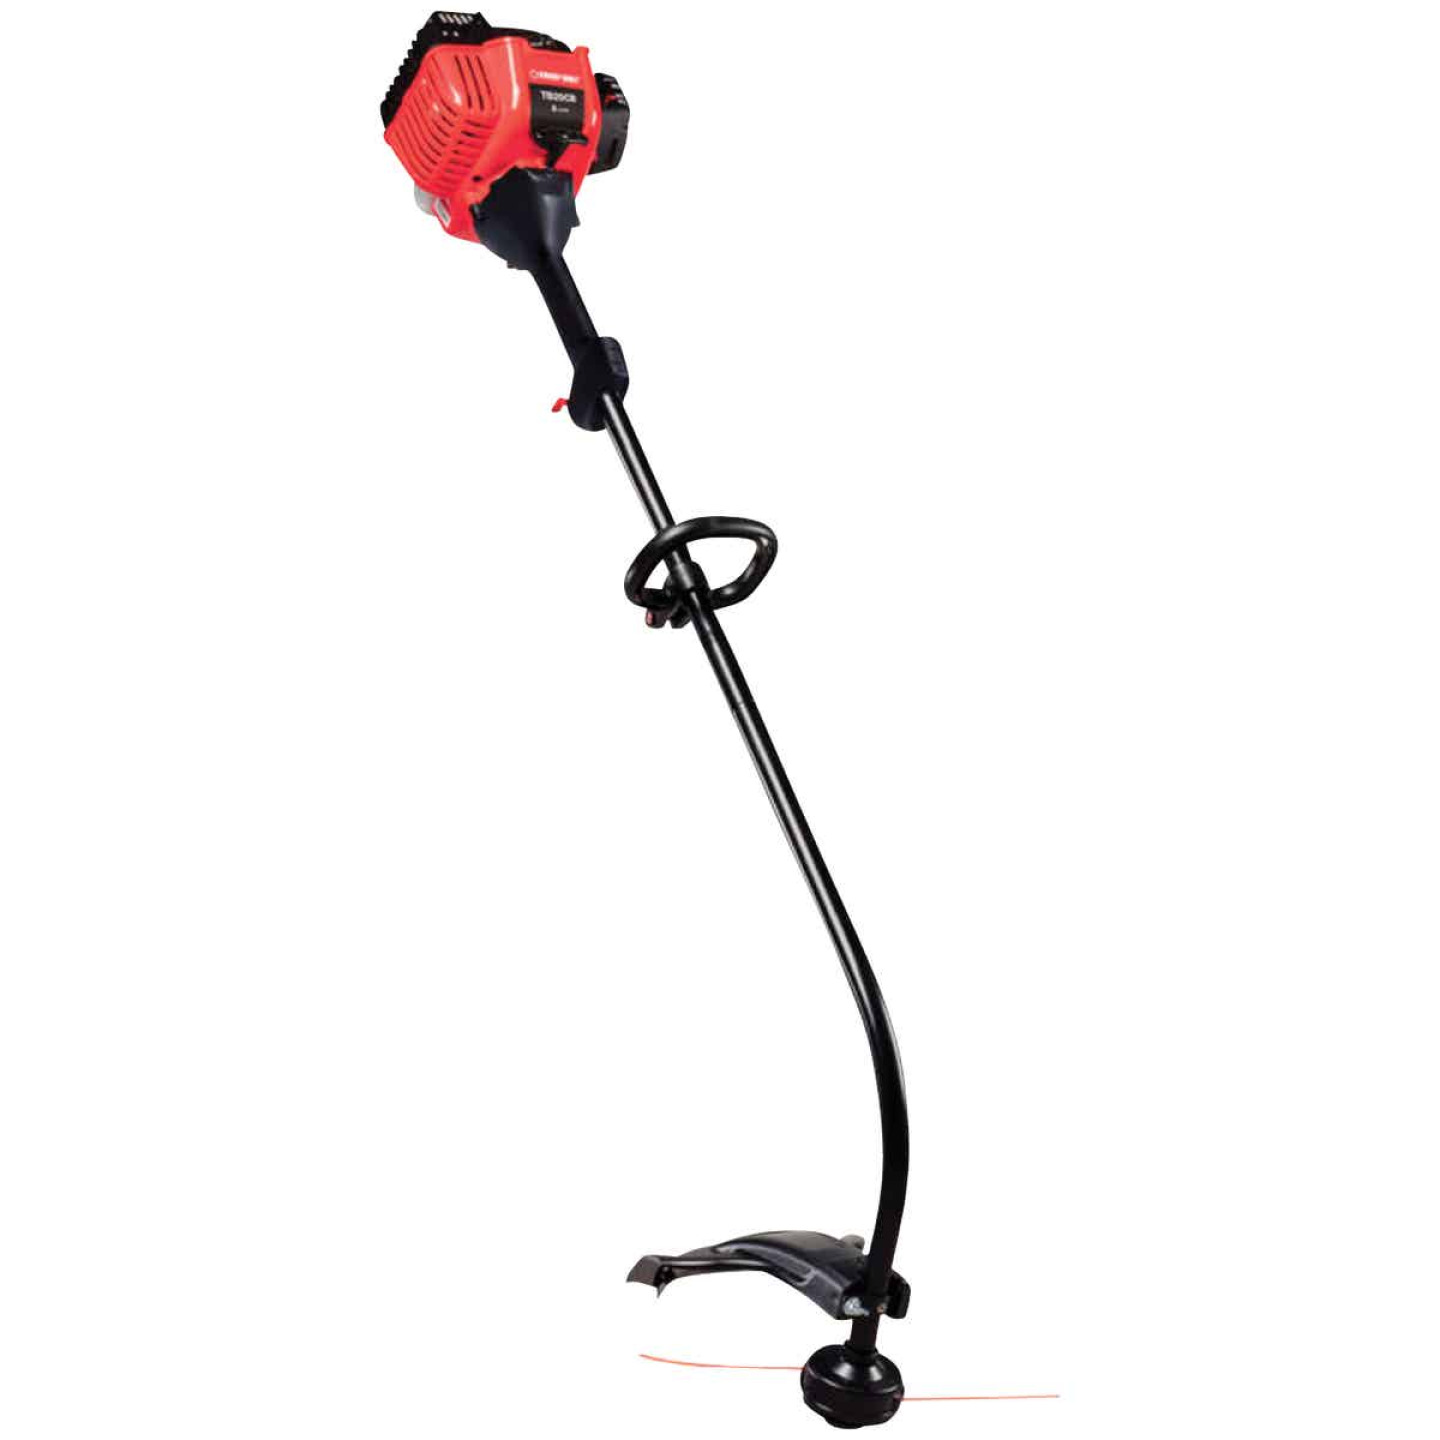 Troy-Bilt TB25CB 25cc 2-Cycle 16 In. Curved Shaft Gas Trimmer Image 1